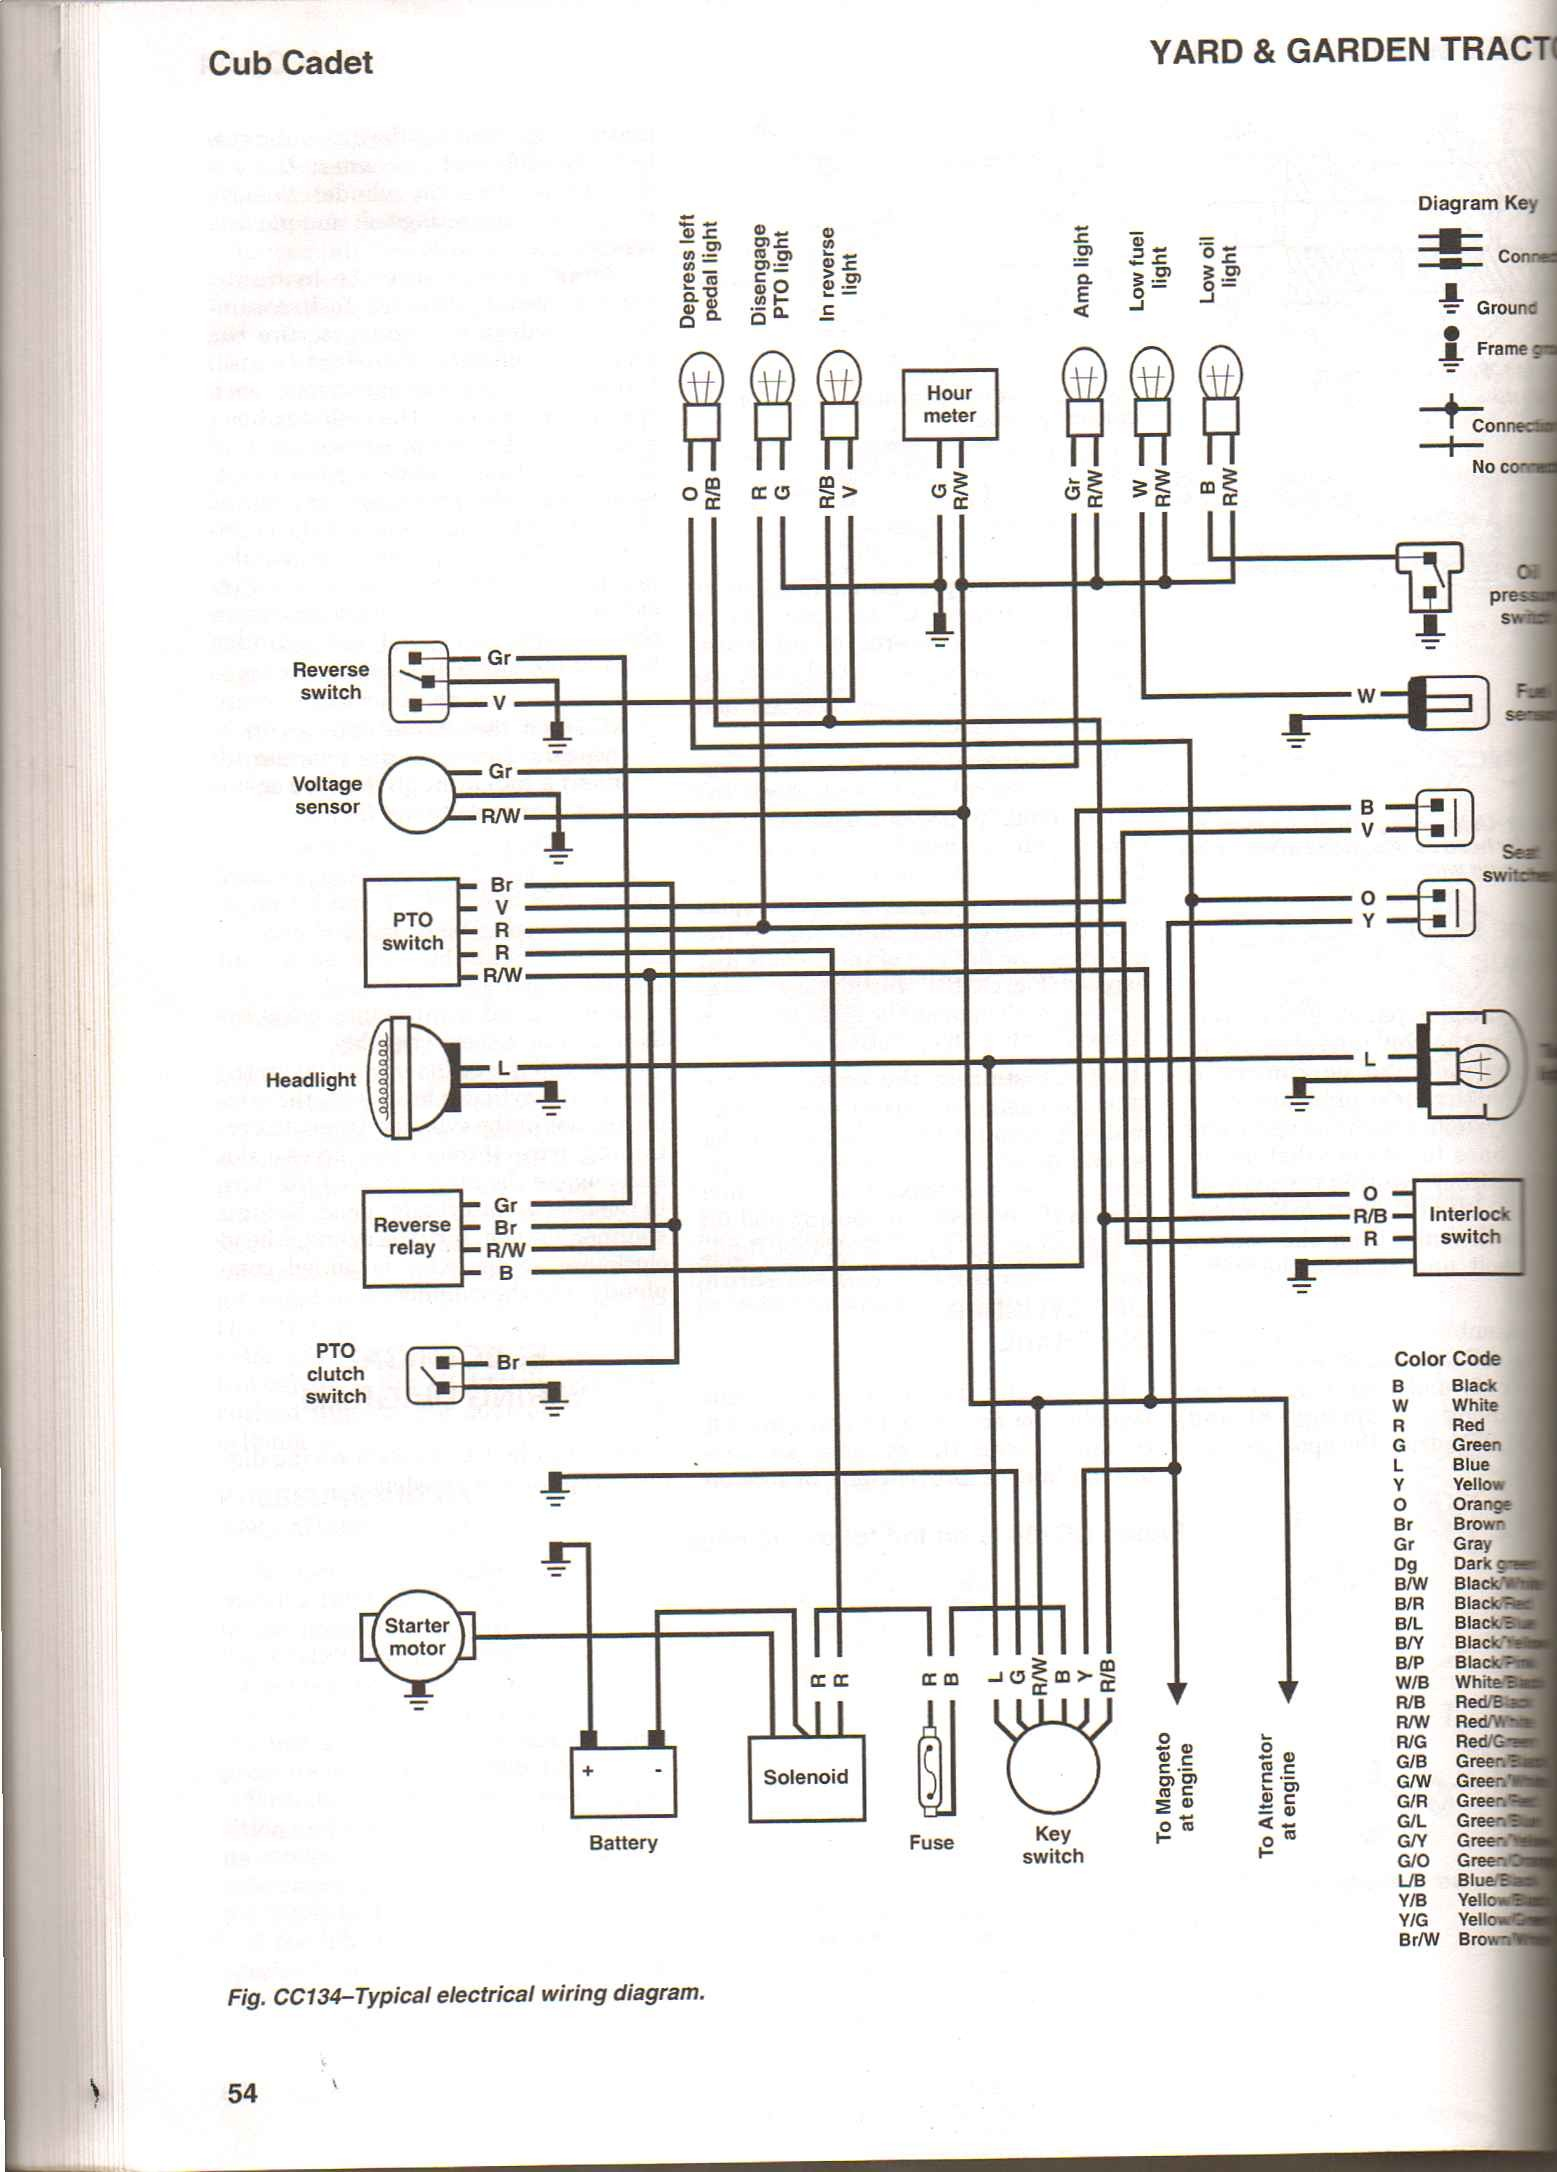 hight resolution of cub cadet lt1045 wiring schematic wiring diagram 16 1